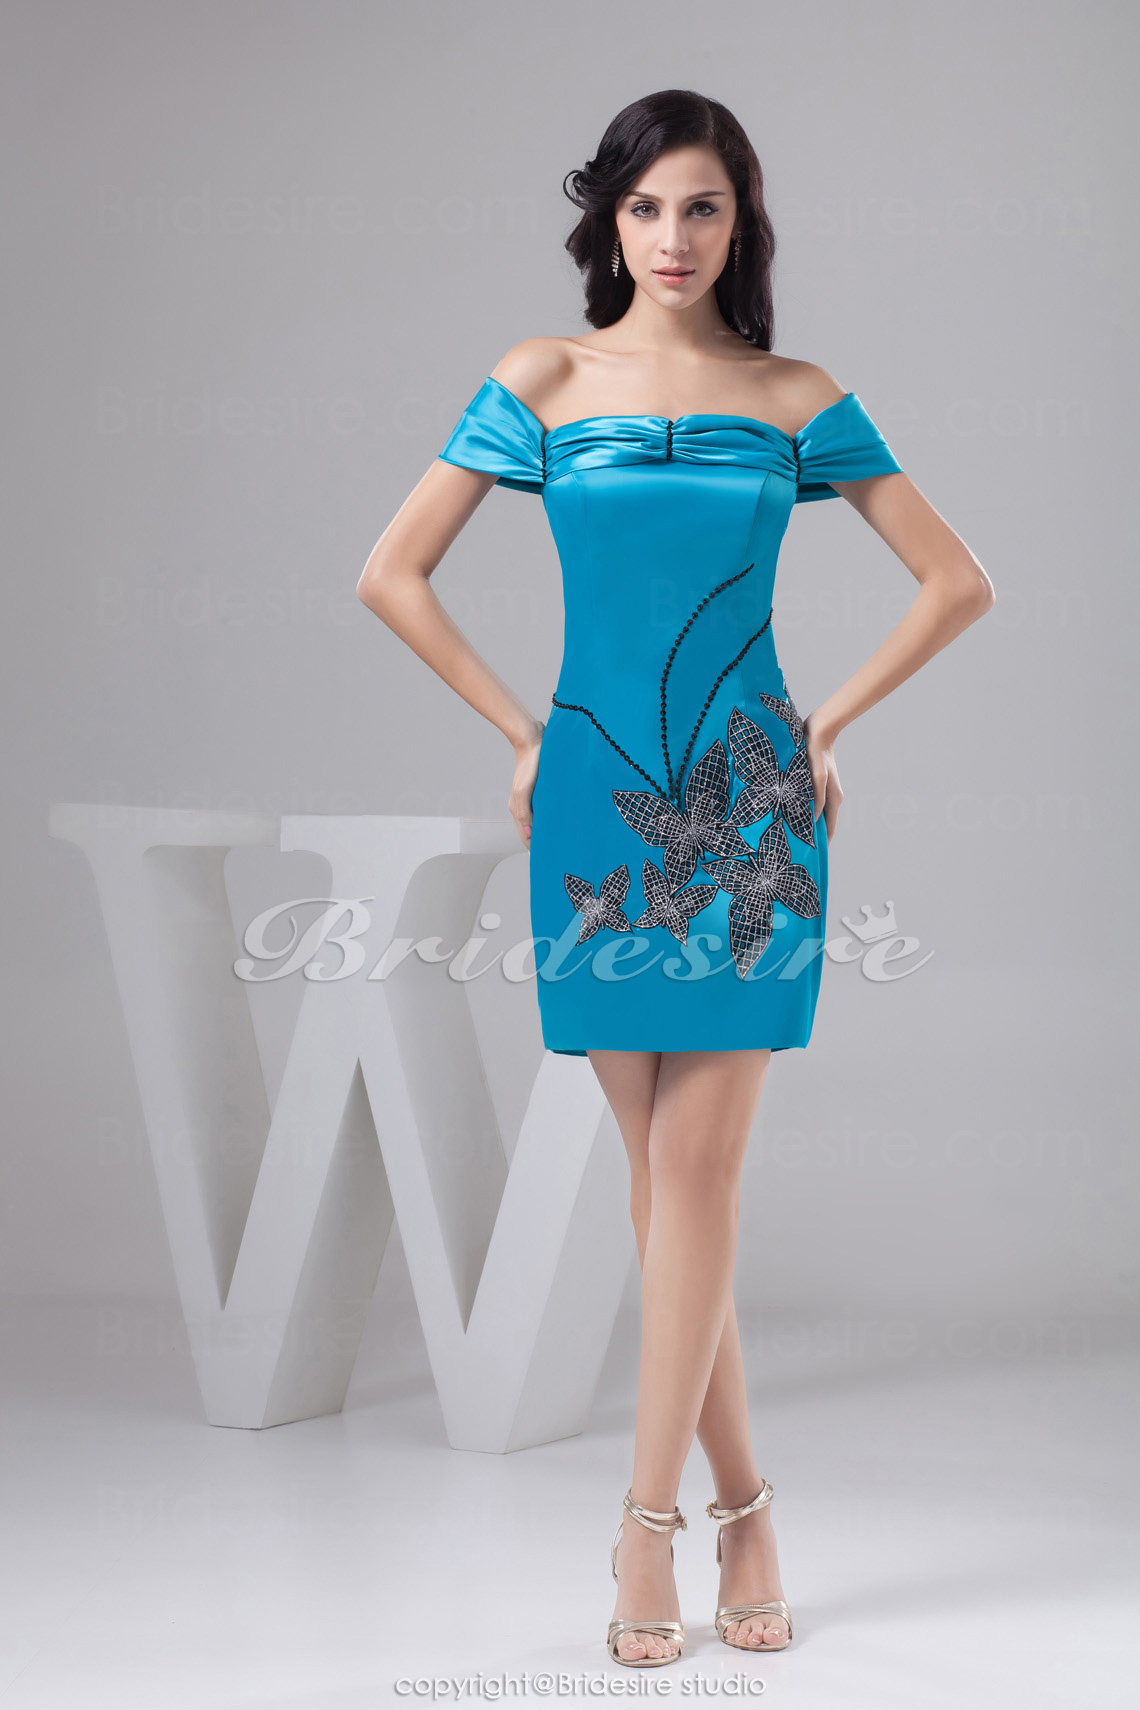 Princess Sheath/Column Off-the-shoulder Short/Mini Short Sleeve Elastic Silk-like Satin Dress